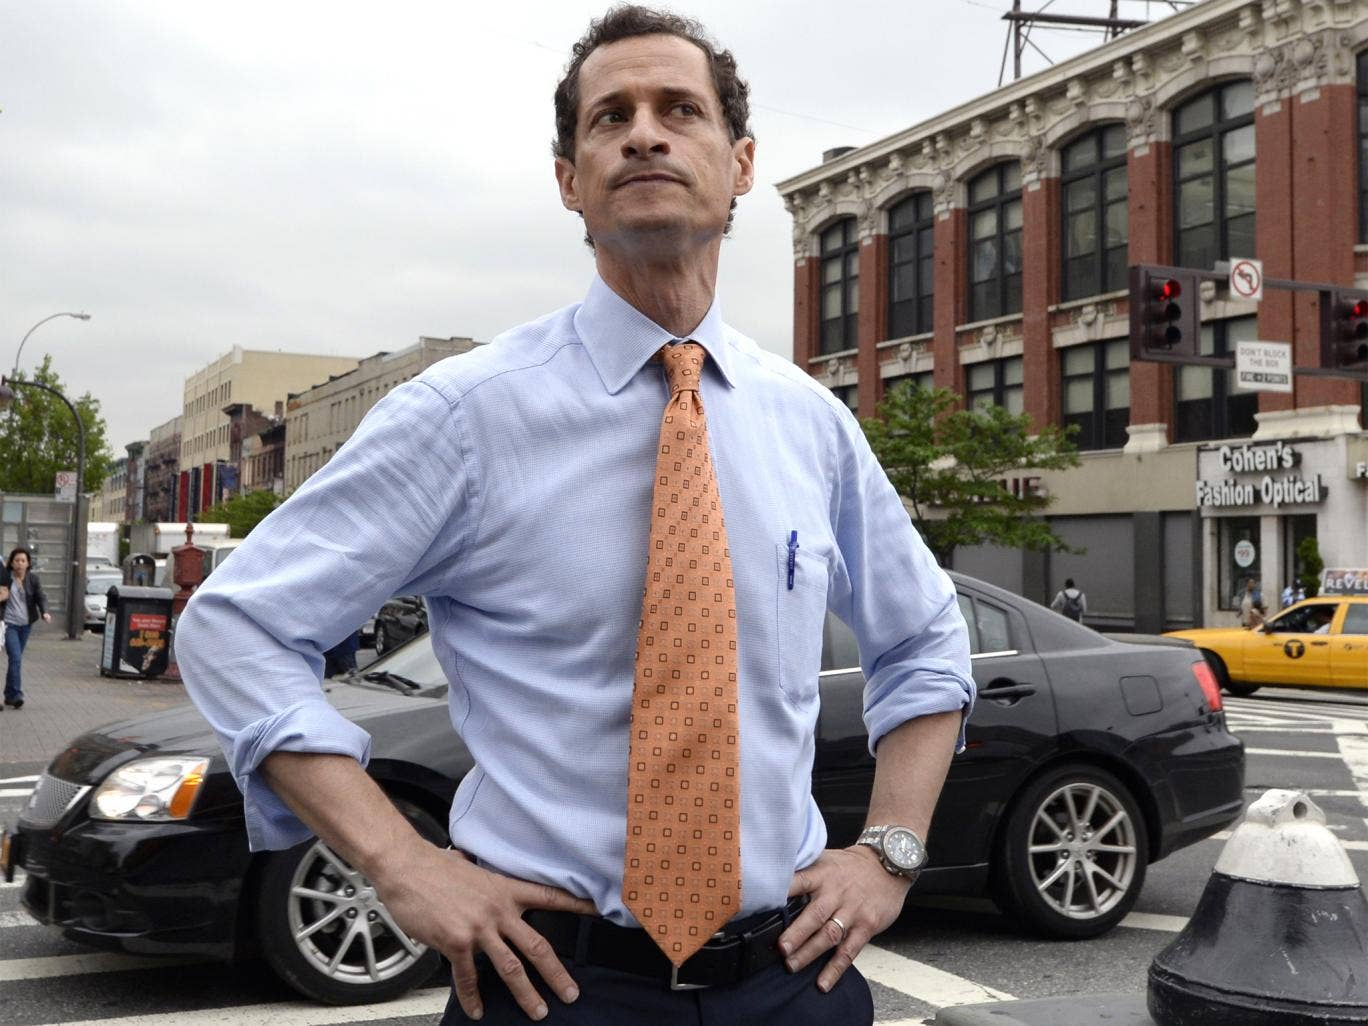 New York mayoral candidate, Anthony Wiener